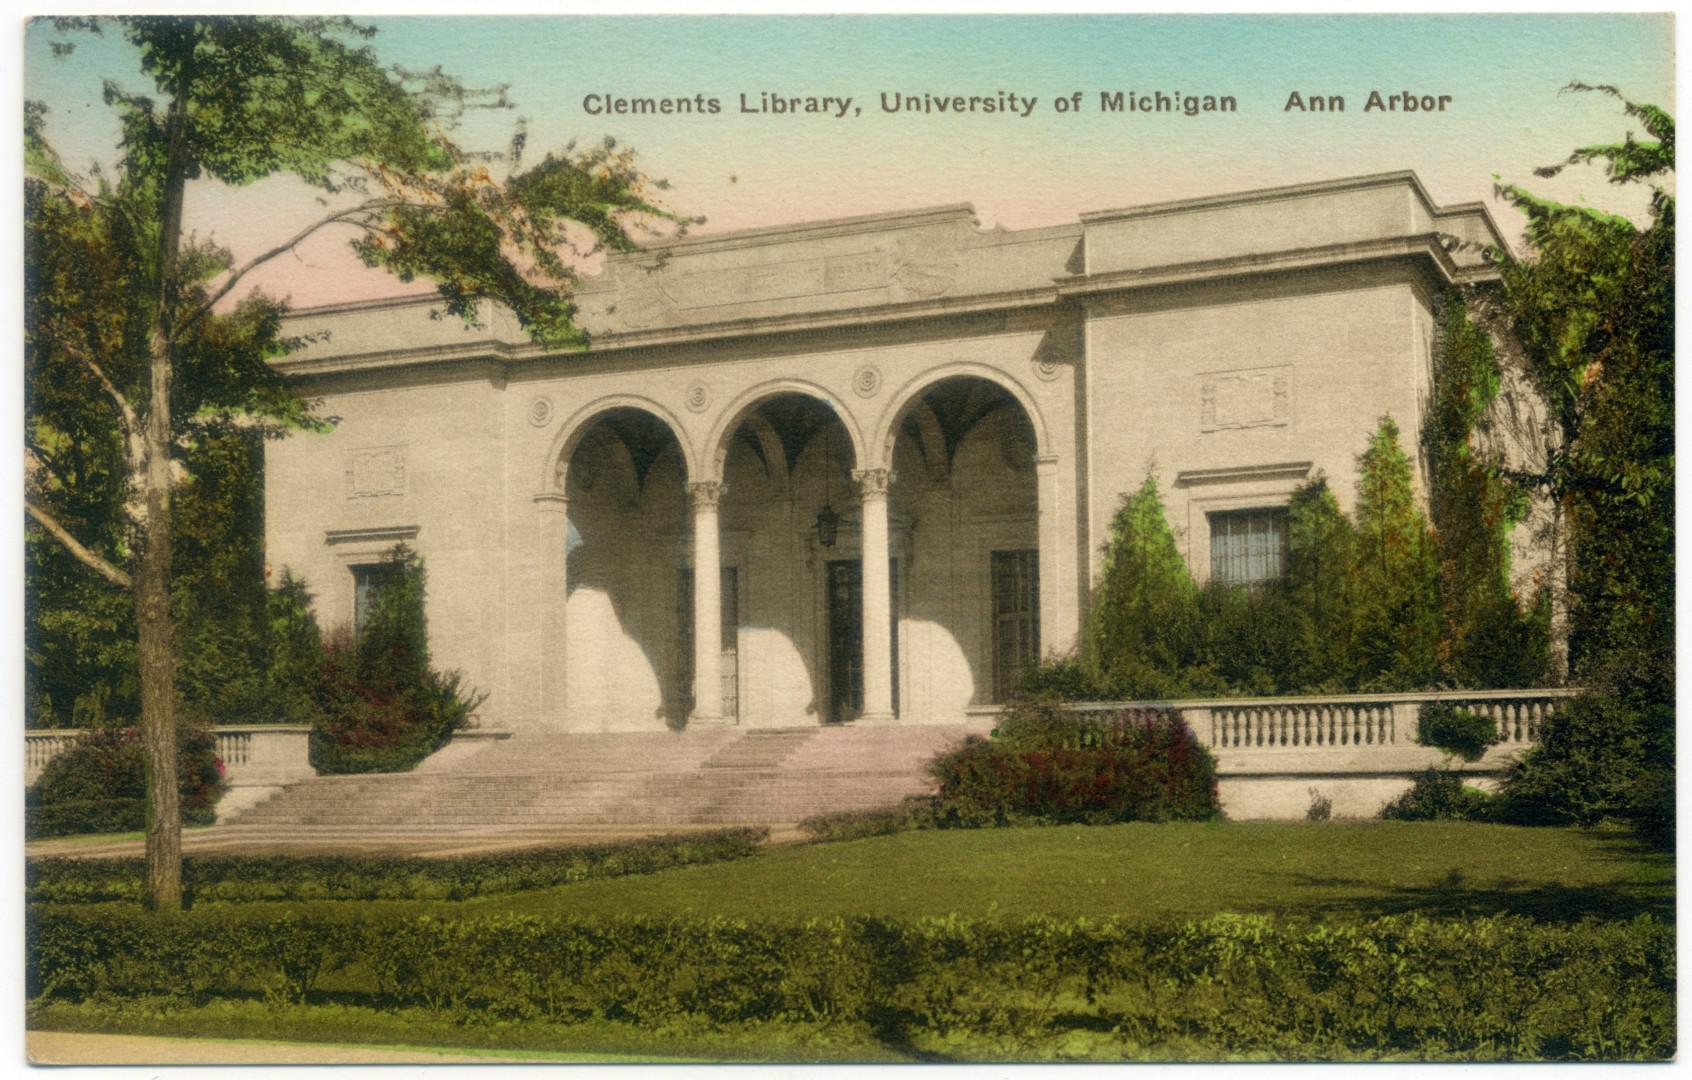 Ann Arbor: University of Michigan, William L. Clements Library